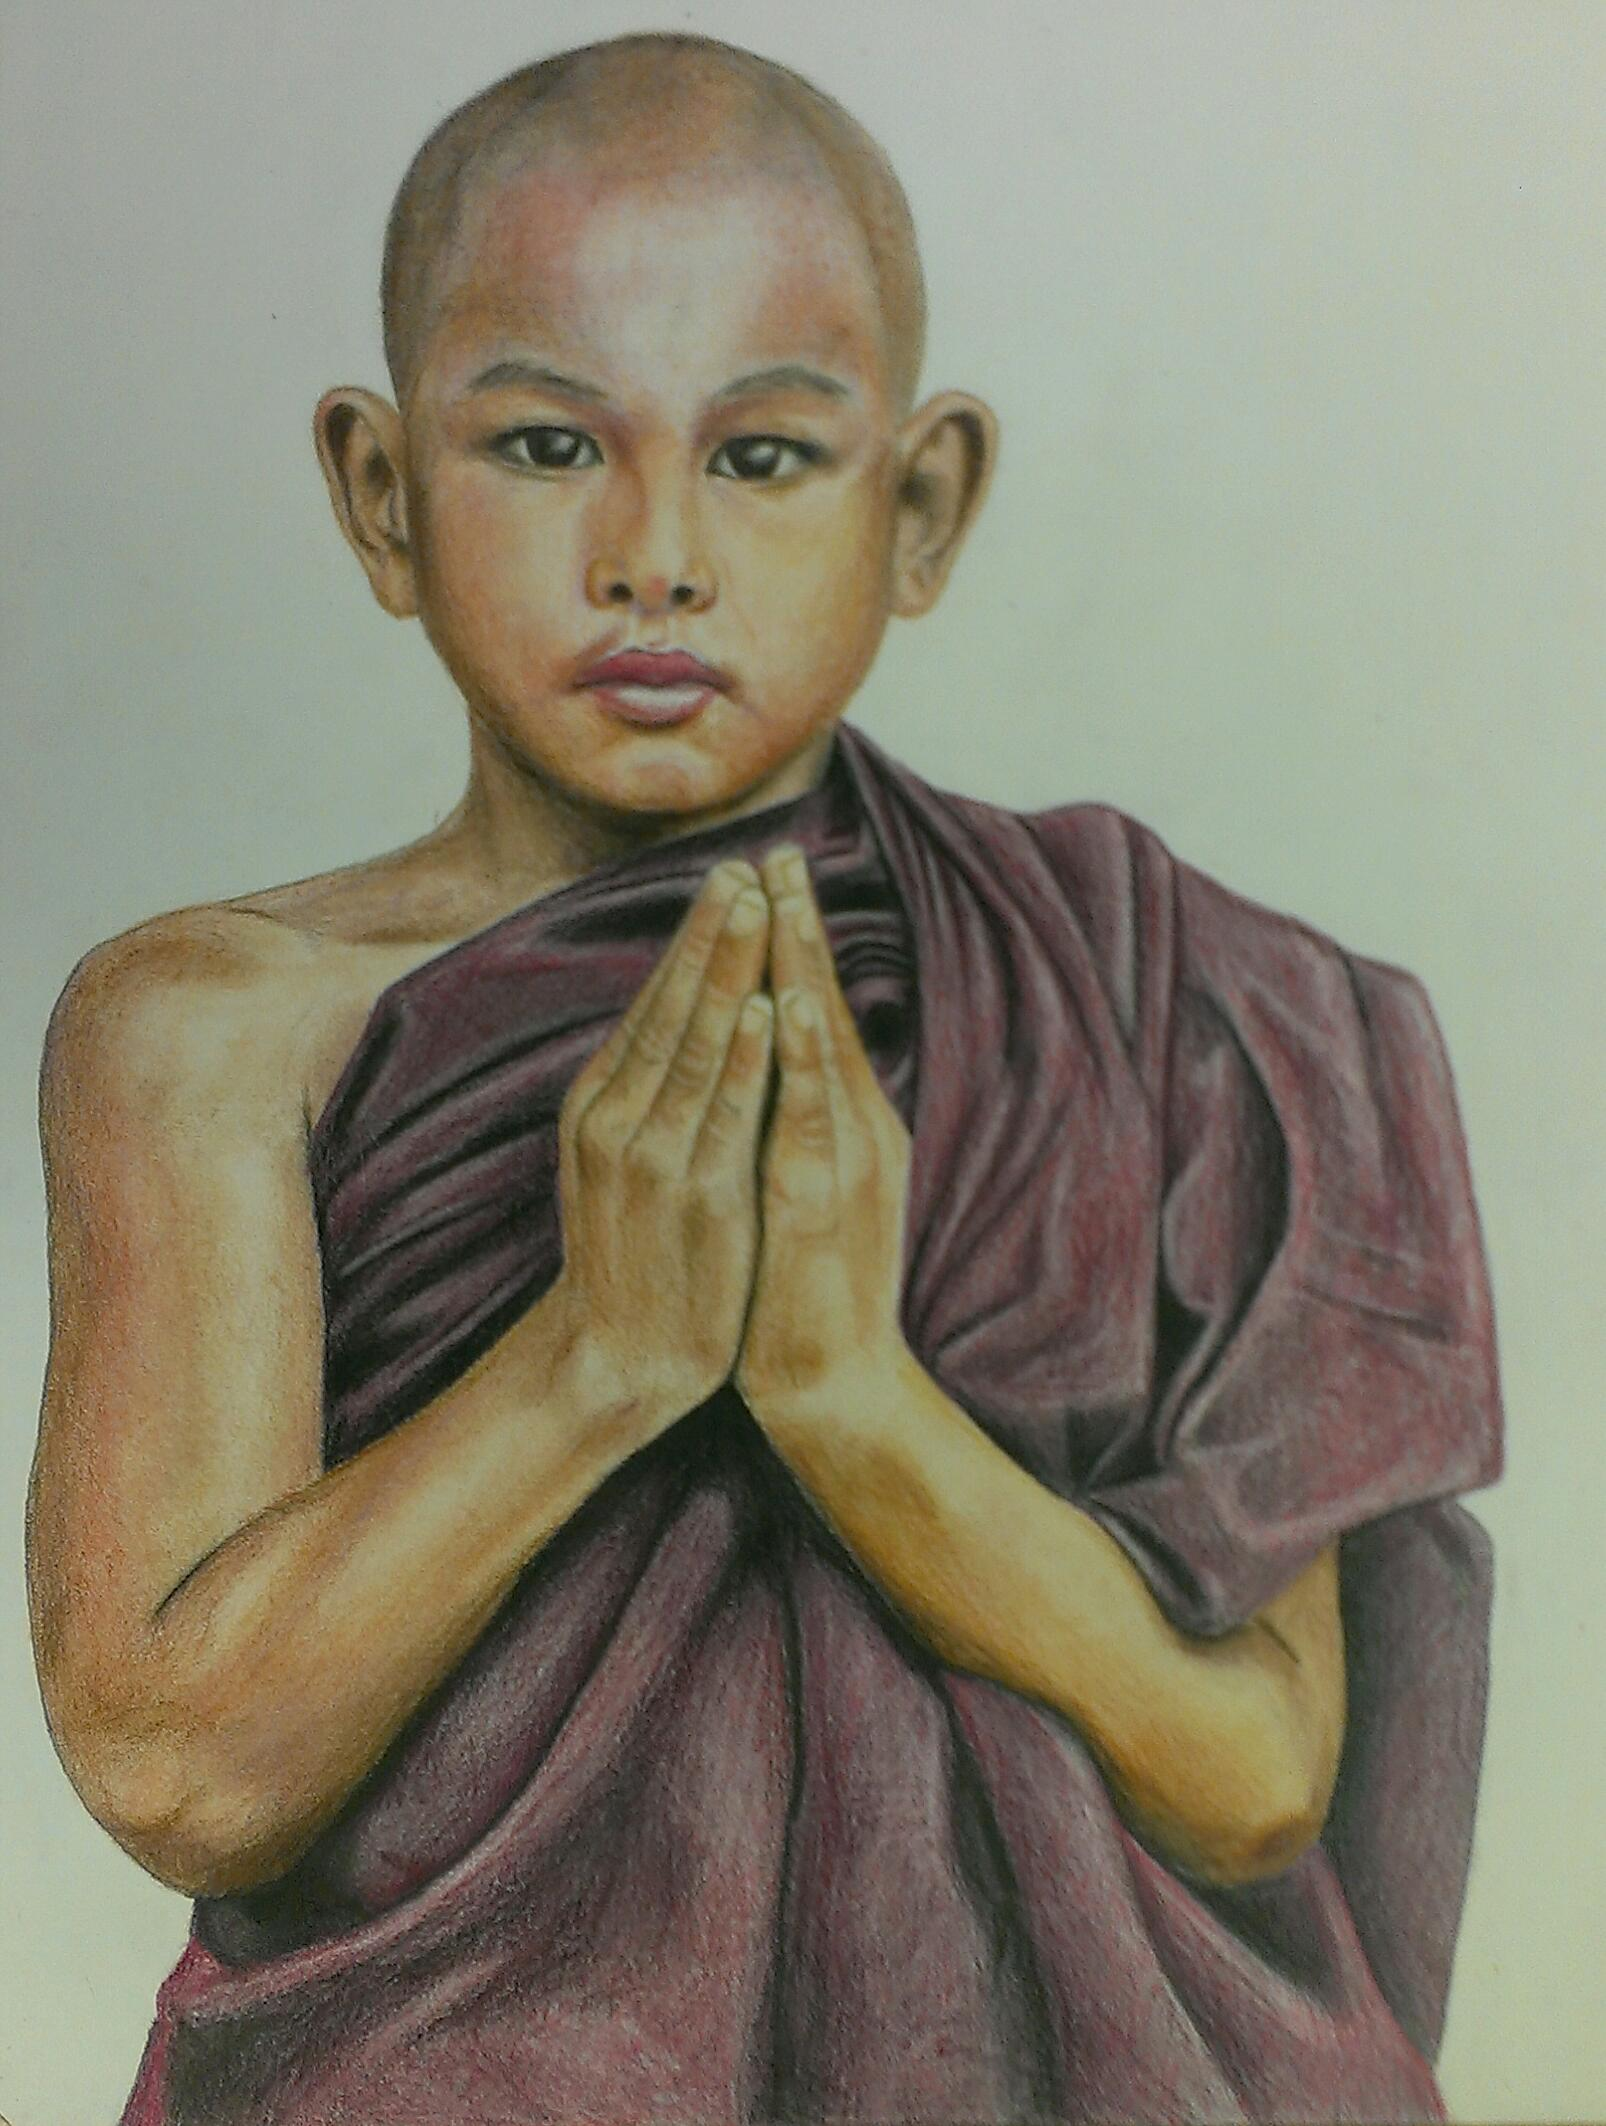 Colored Pencil – Age 15